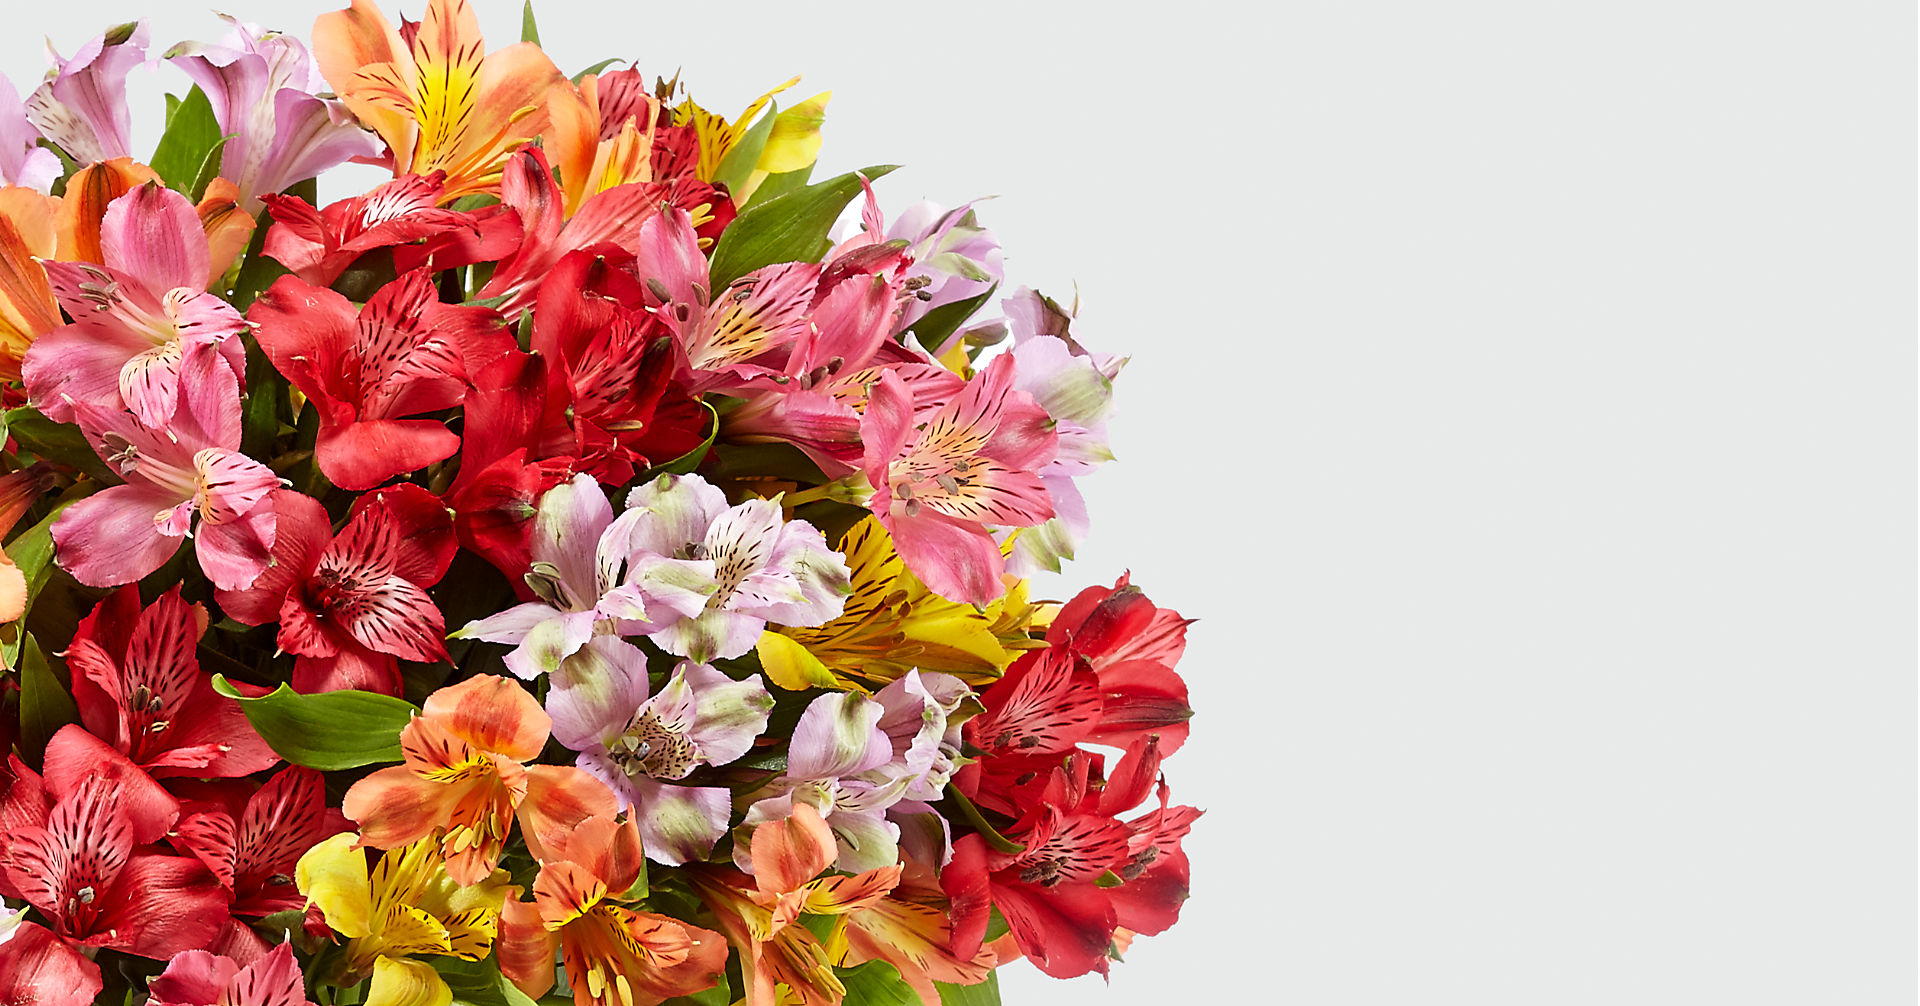 Rainbow Discovery Peruvian Lily Bouquet - Image 4 Of 5